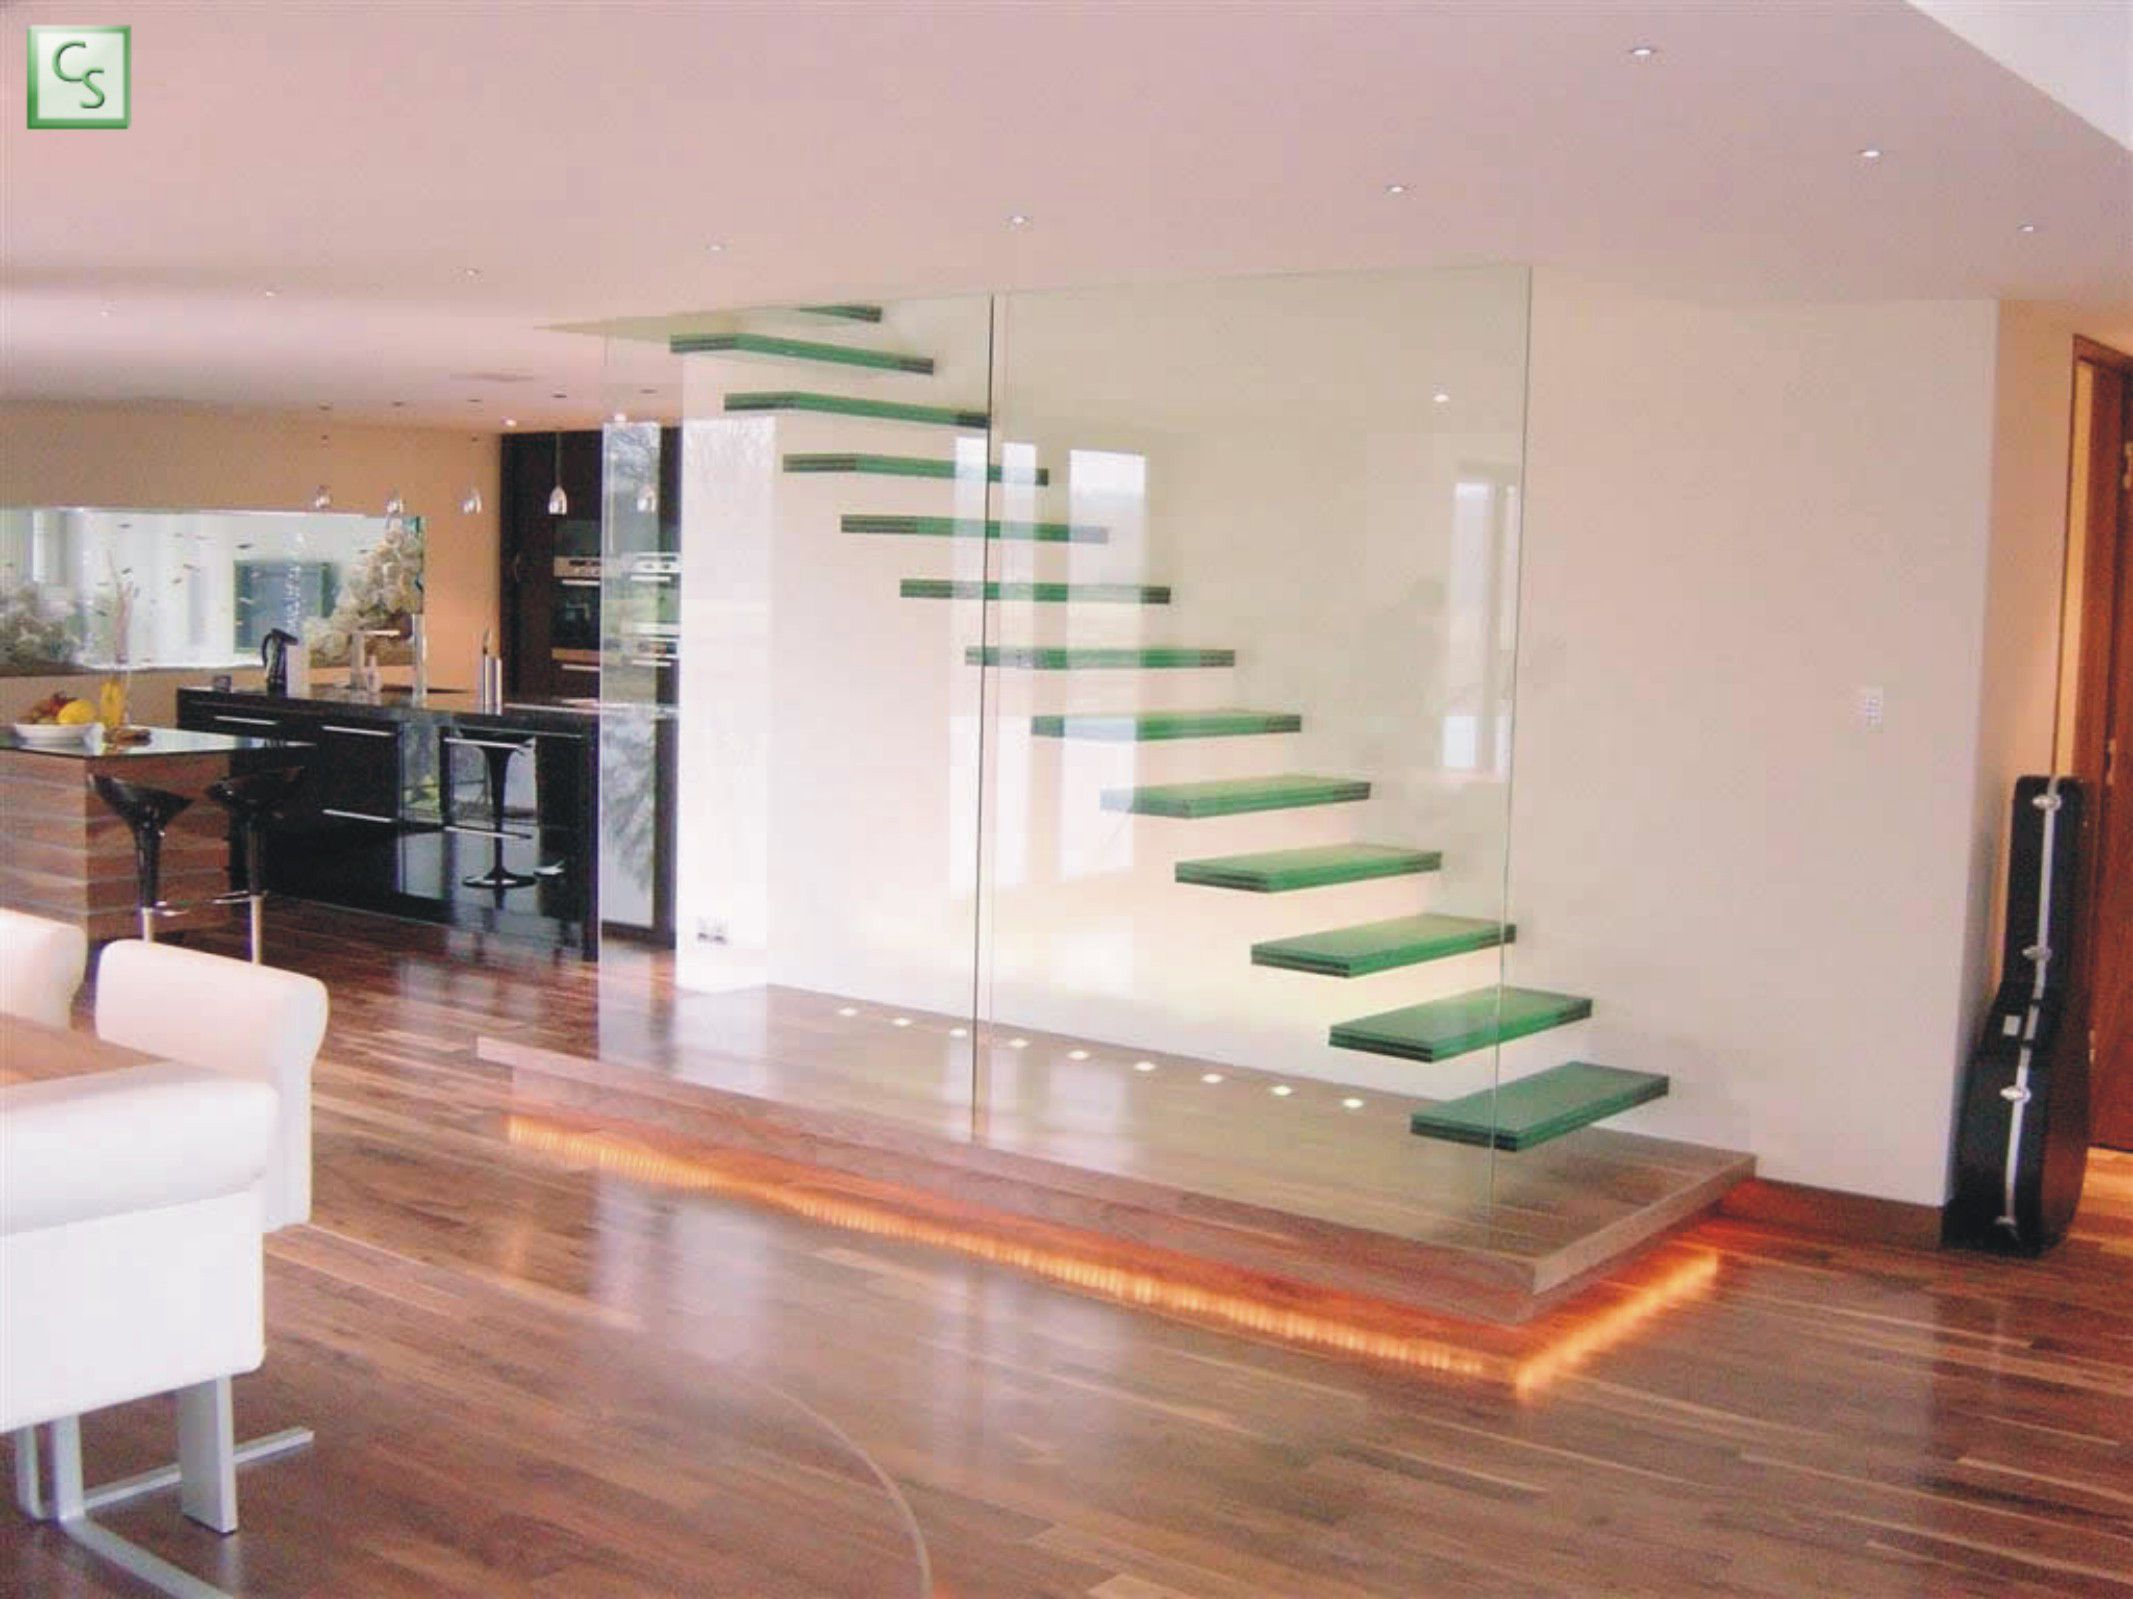 Accecories and Furniture,Fascinating Interior Home Design With Modern  Floating Staircase And Glass Divider Featuring Laminated Wooden Flooring  And Recessed ...